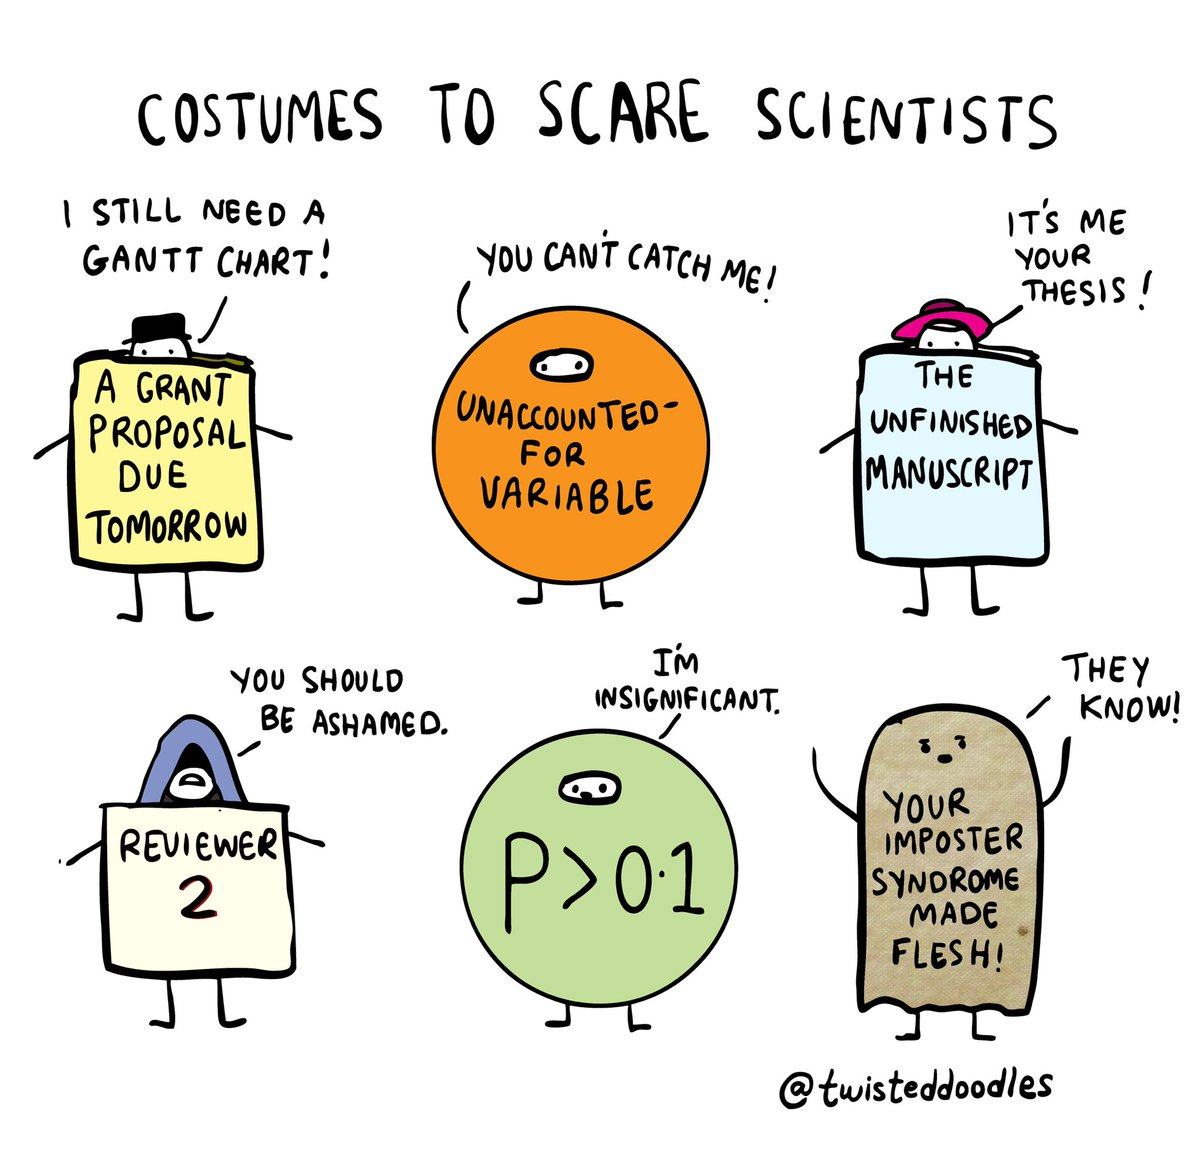 RT @twisteddoodles: Halloween costumes to scare scientists (cartoon for @newscientist ) #halloween #AcademicTwitter https://t.co/OgsngHxQip